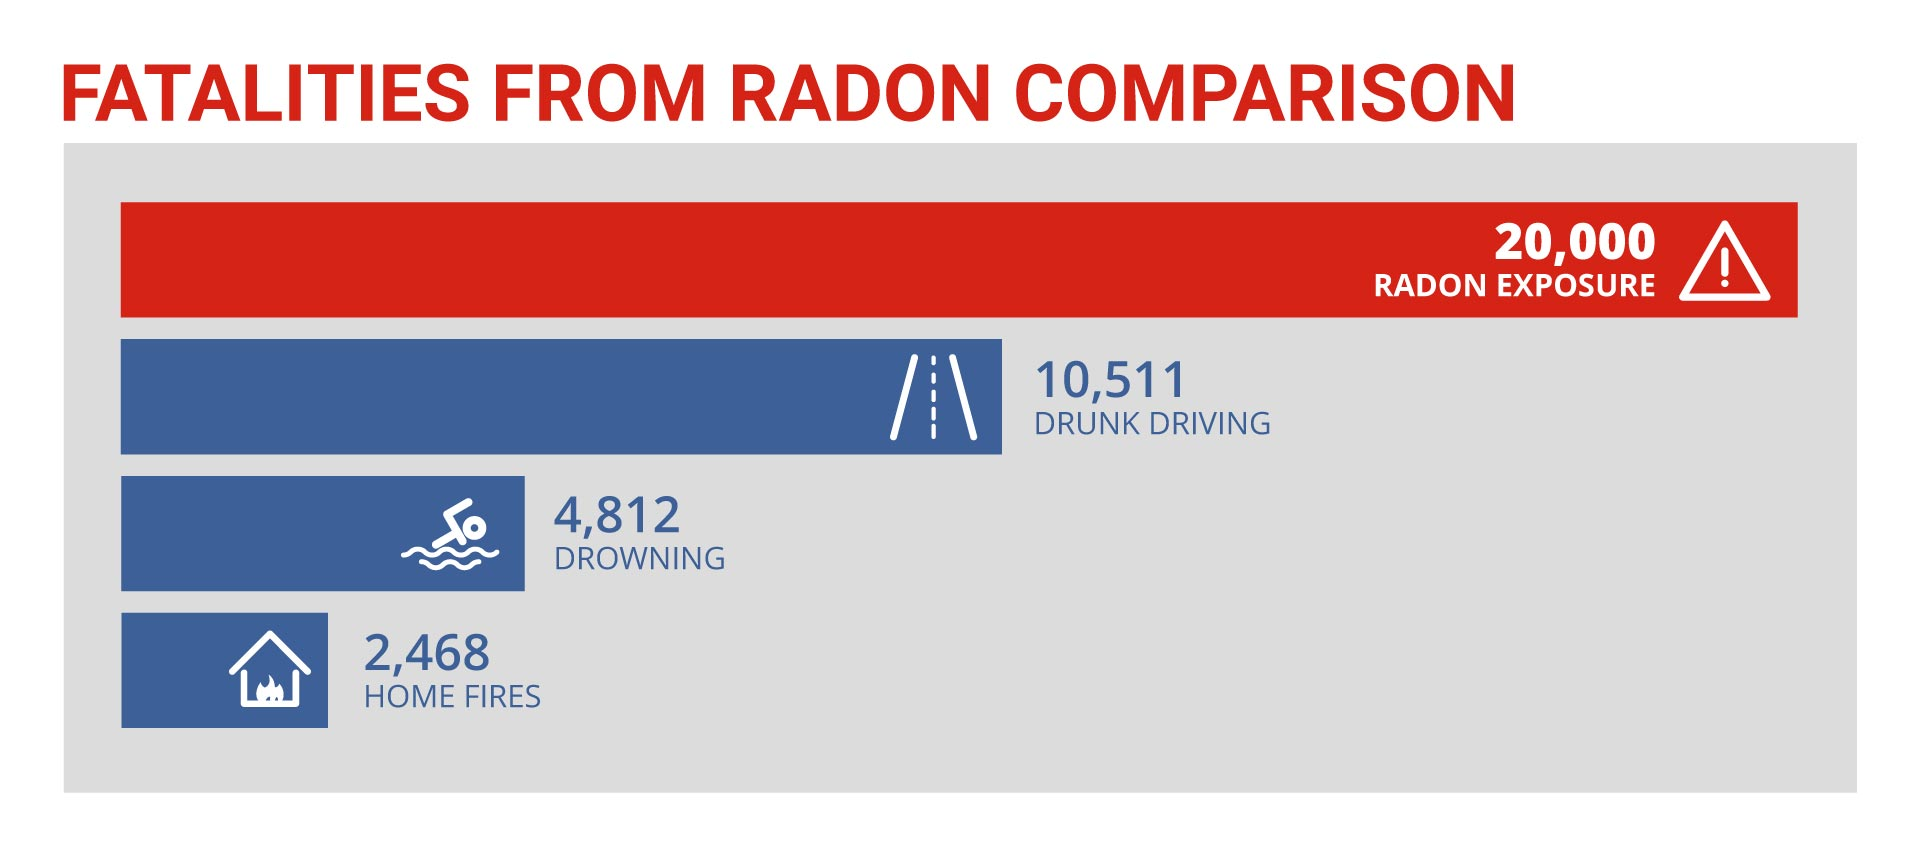 radon levels and fatalities from radon